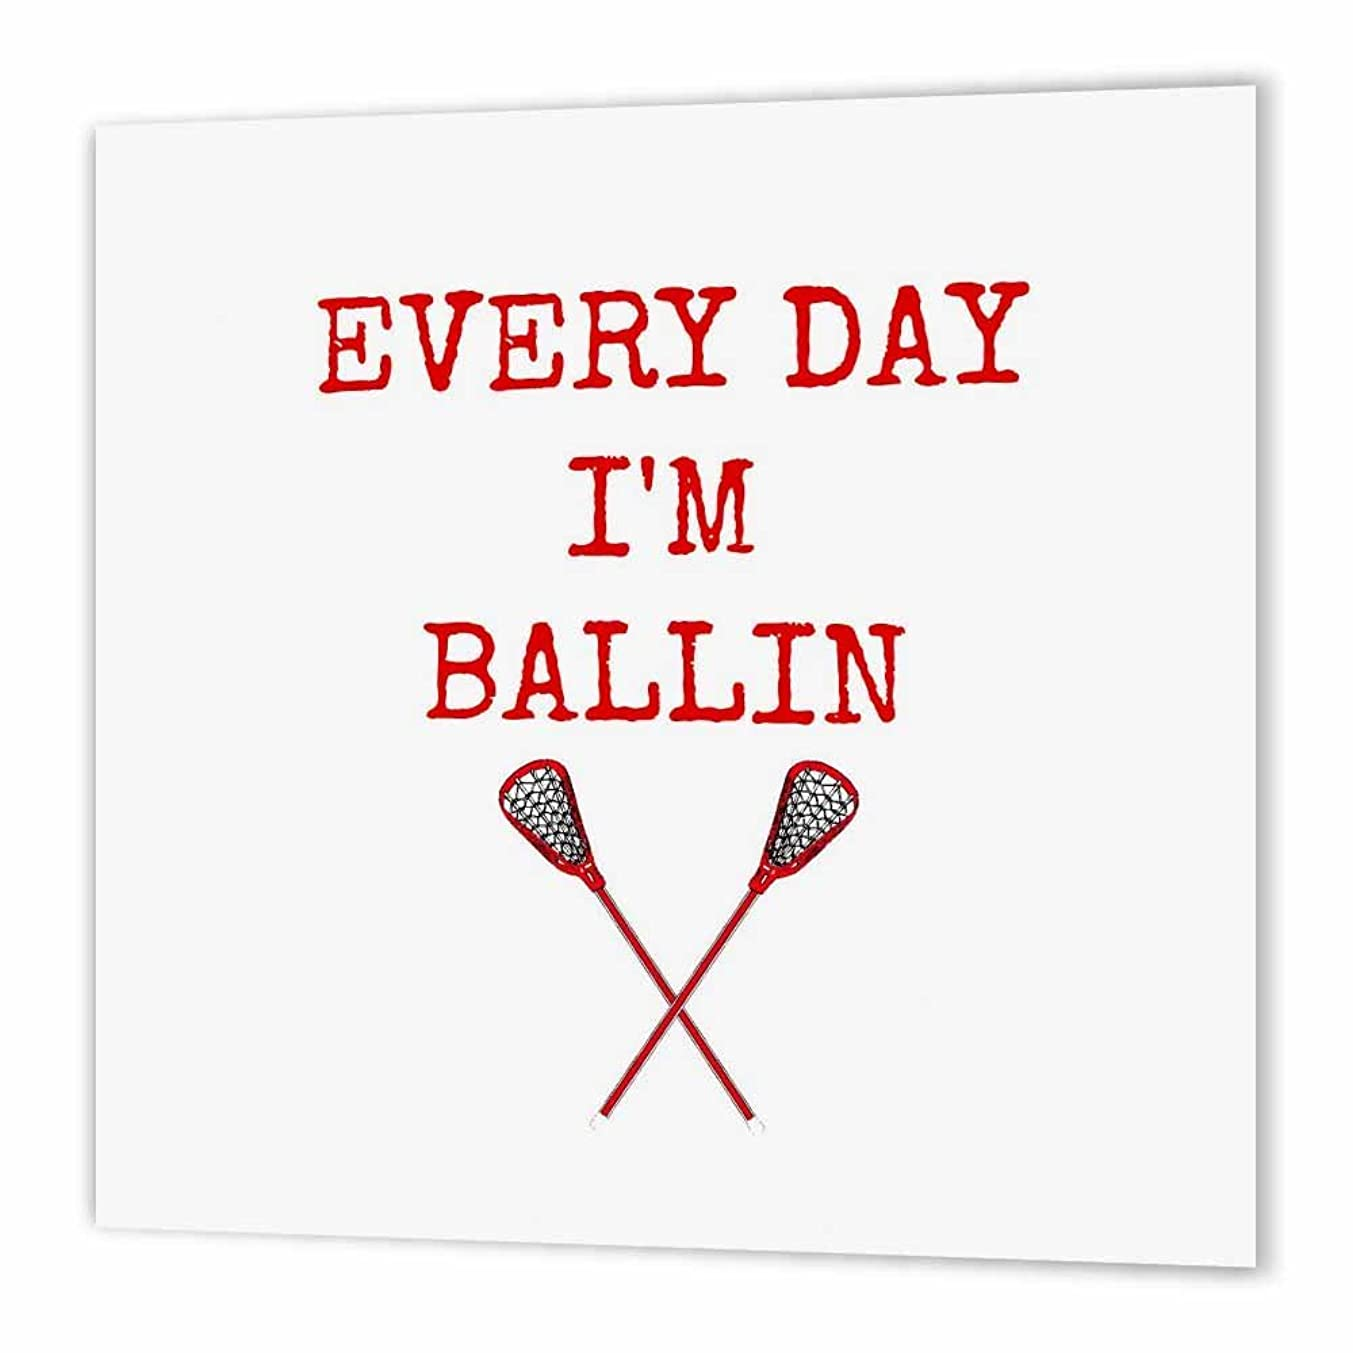 3dRose Every Day im Ballin, Lacrosse Sticks Picture, red Lettering-Iron On Heat Transfer, 8 by 8-inch, for White Material (ht_172356_1)